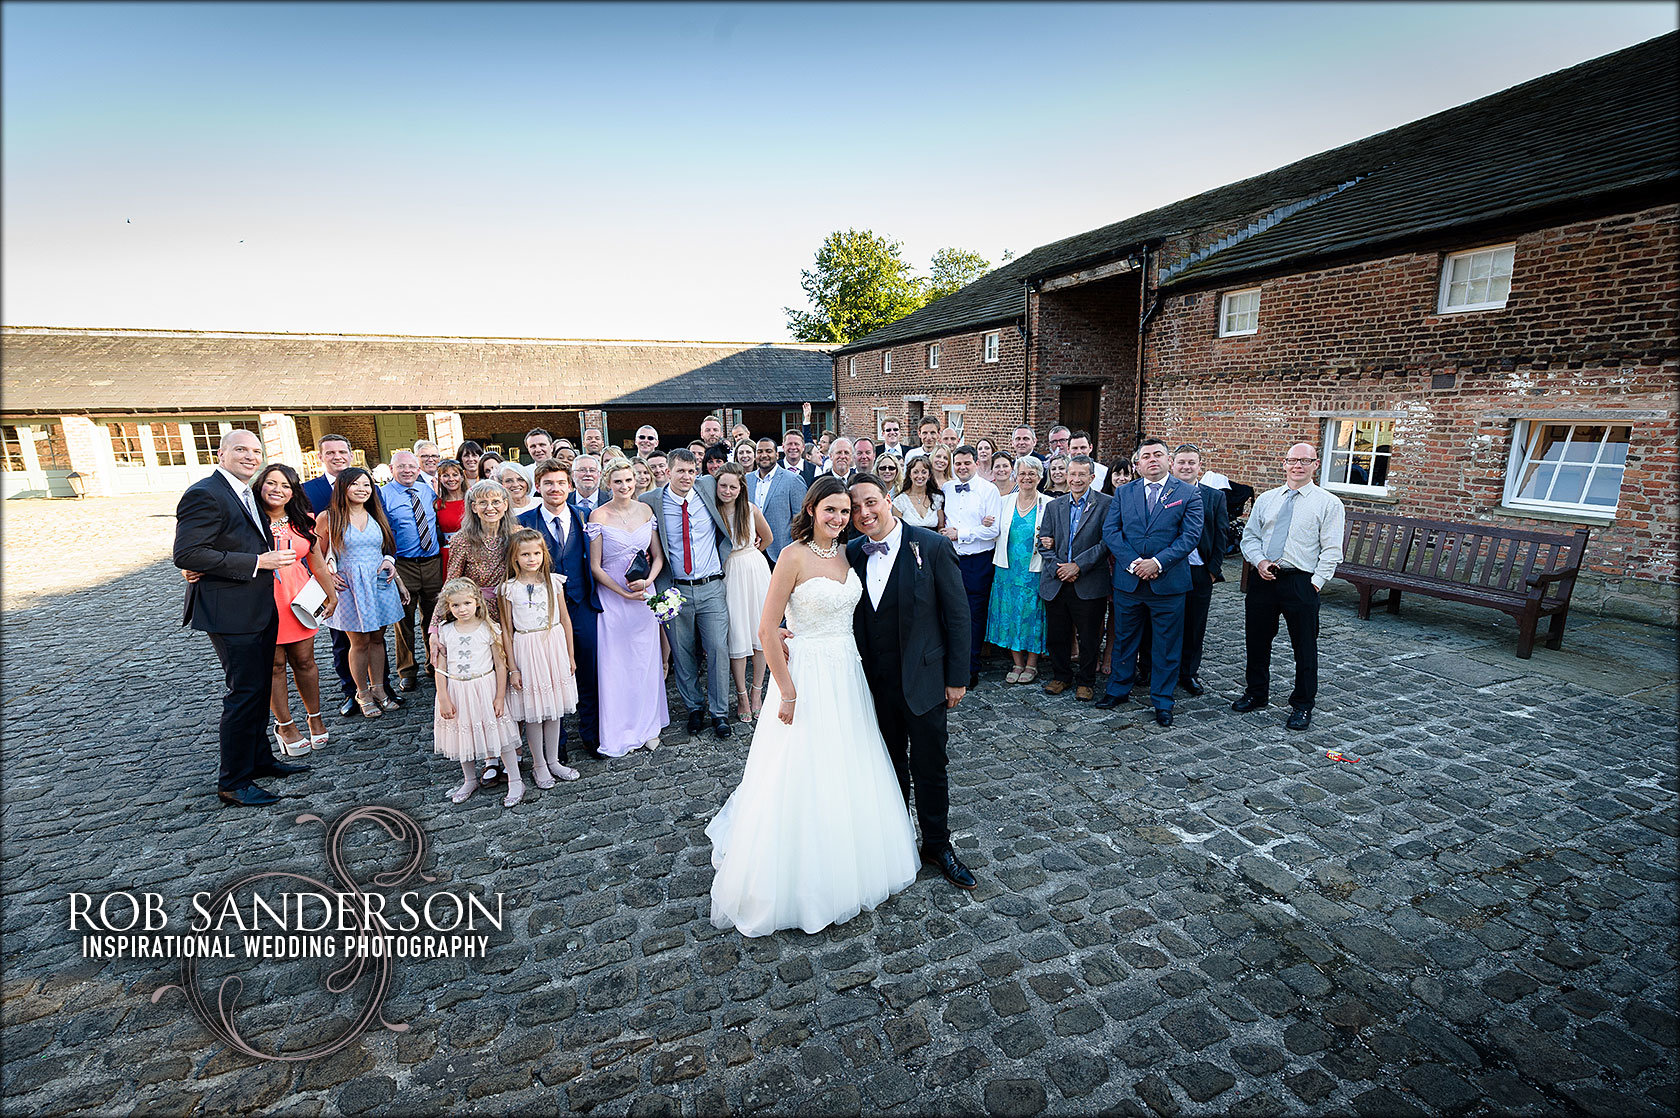 Rob Sanderson wedding photography's big broup picture